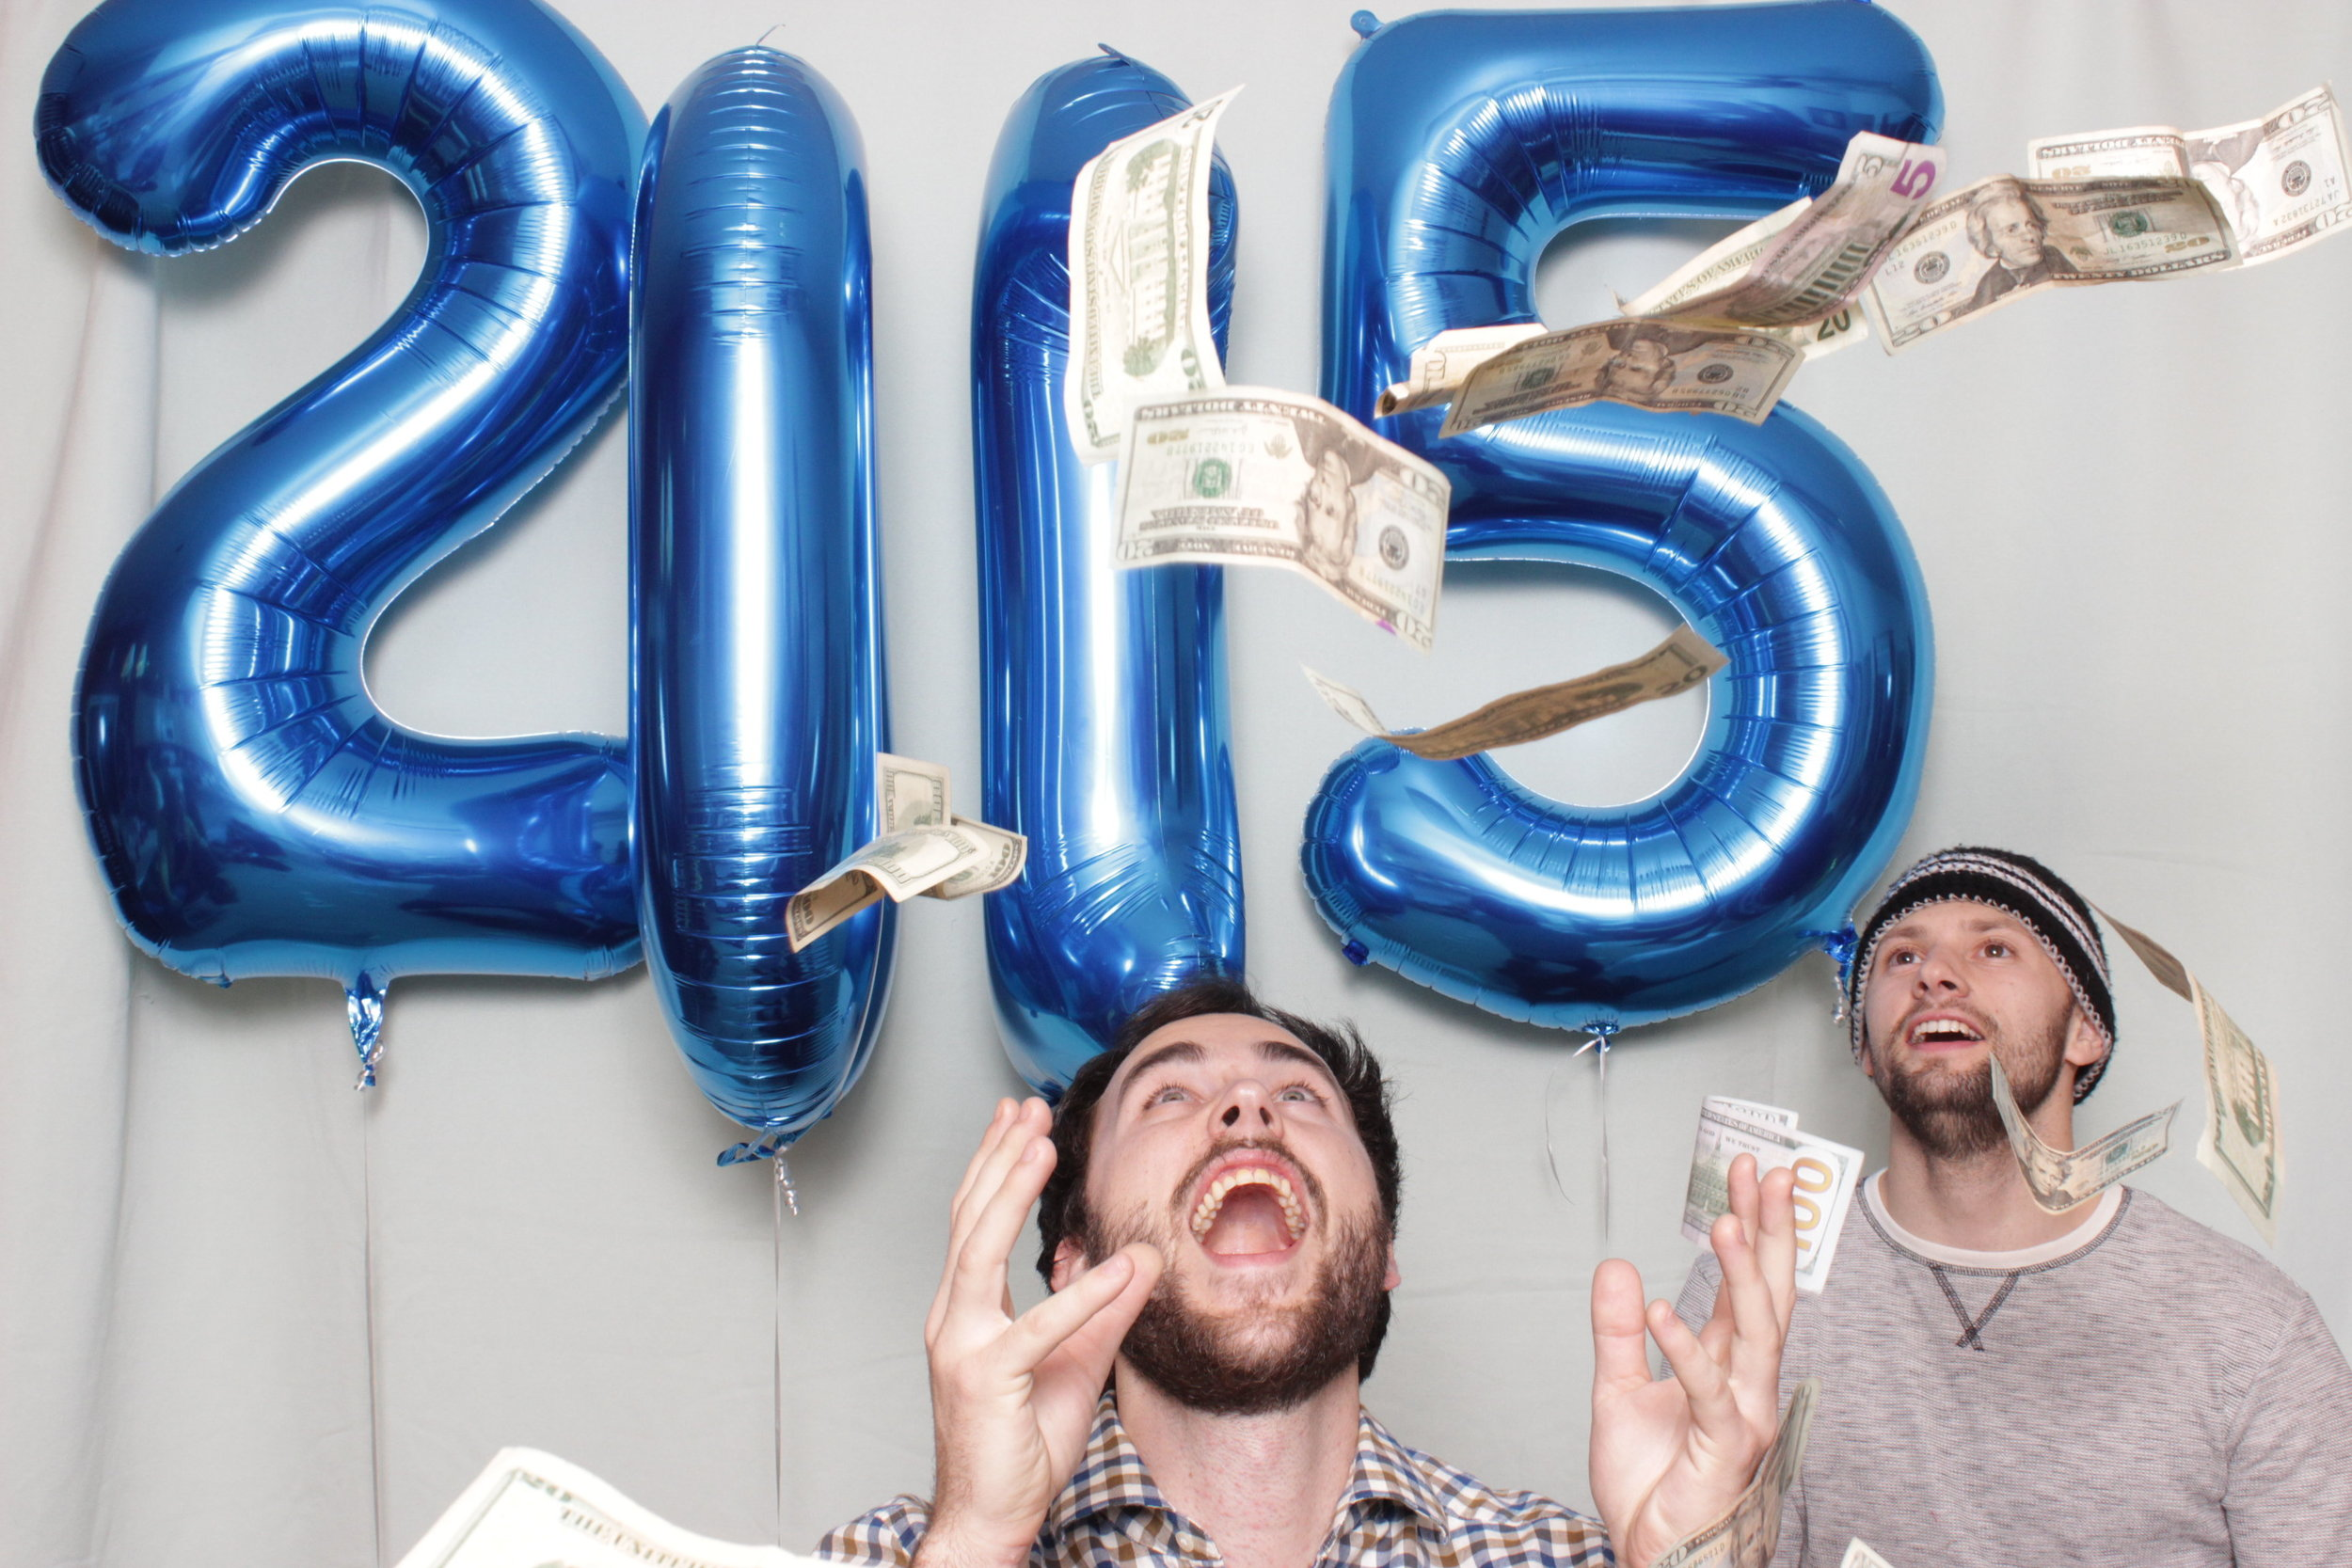 photo-booth-rental-in-chico-california-new-years-party-raining-money